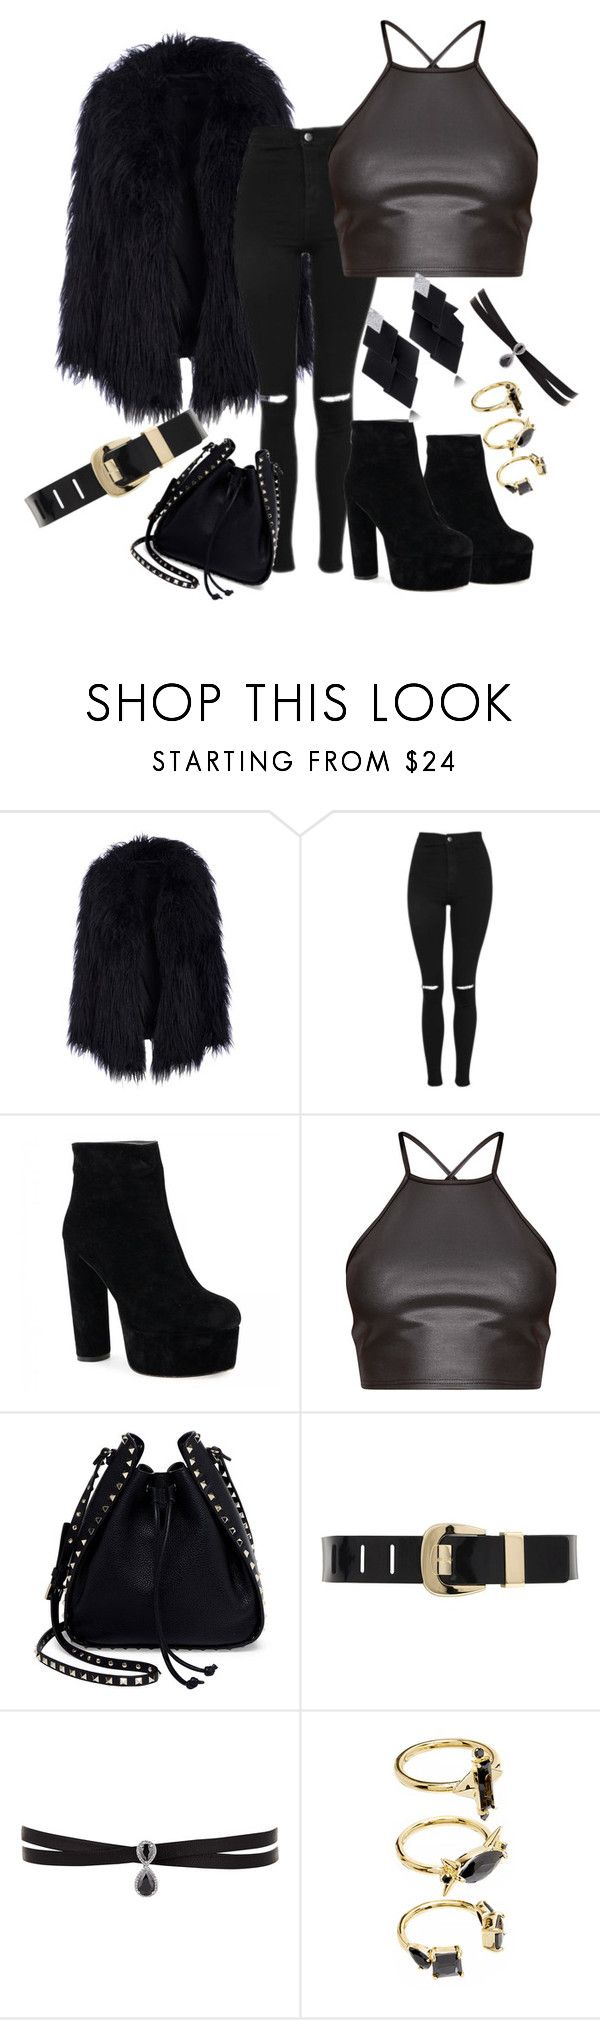 """Sem título #28"" by isysgabriely on Polyvore featuring moda, Topshop, Valentino, MICHAEL Michael Kors, Roberto Demeglio, Fallon e Noir Jewelry"